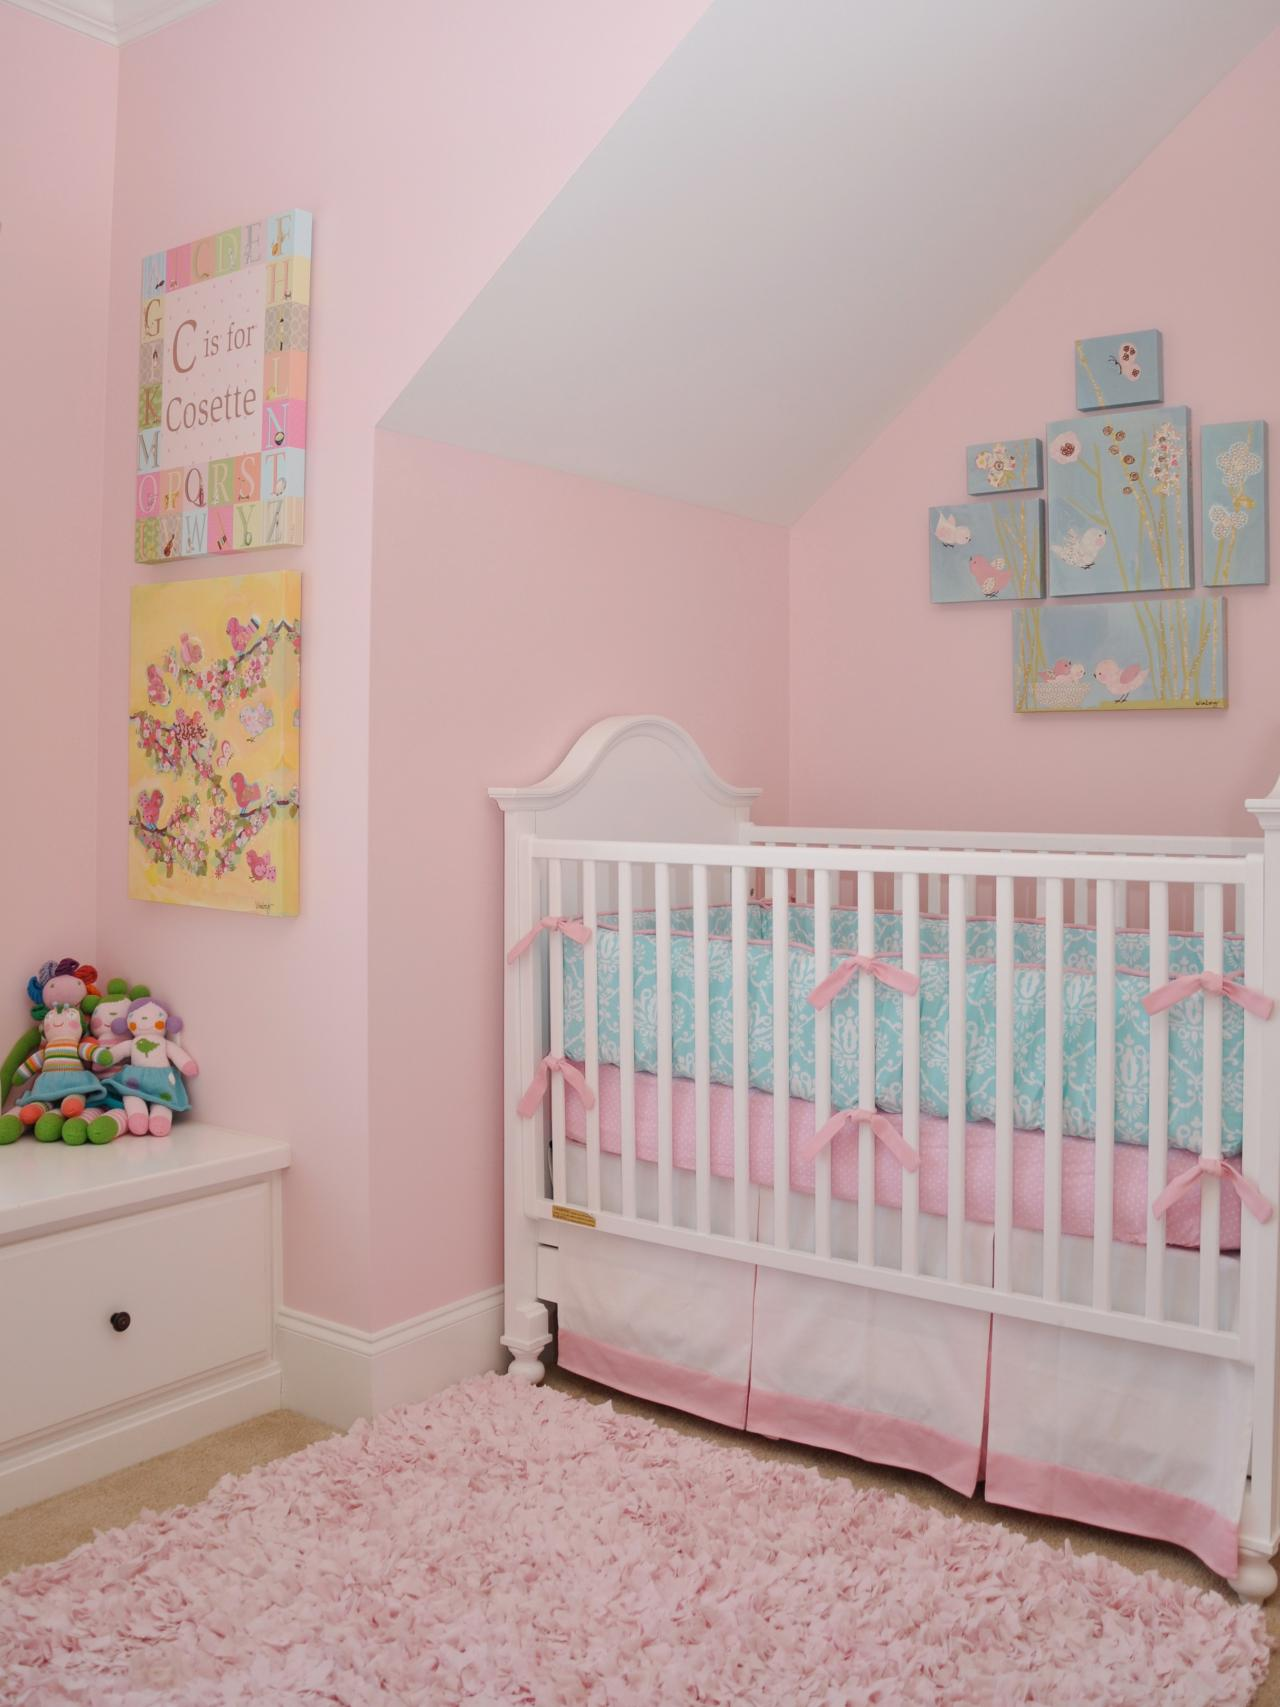 Amelia S Room Toddler Bedroom: Simple Decorating: Girl Nursery Design